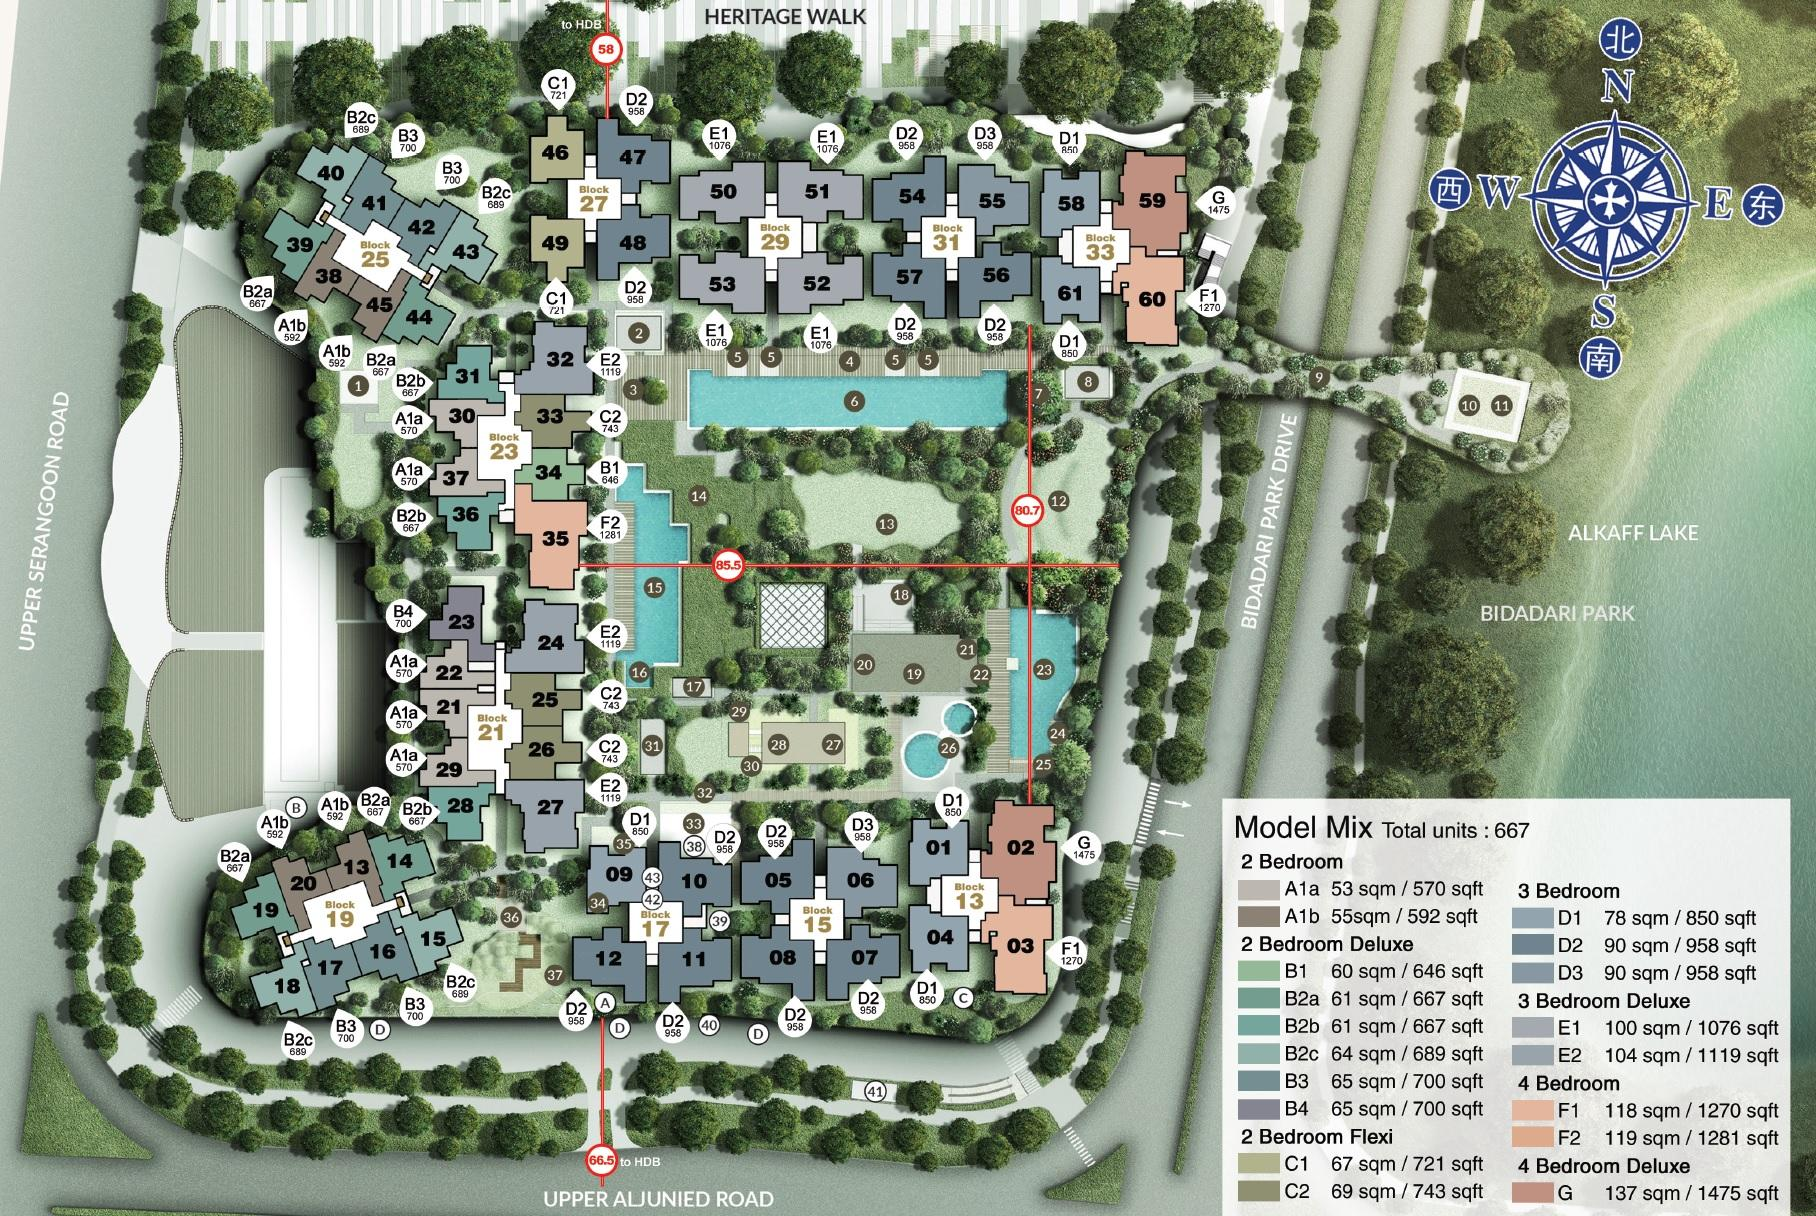 The Woodleigh Residences site plan